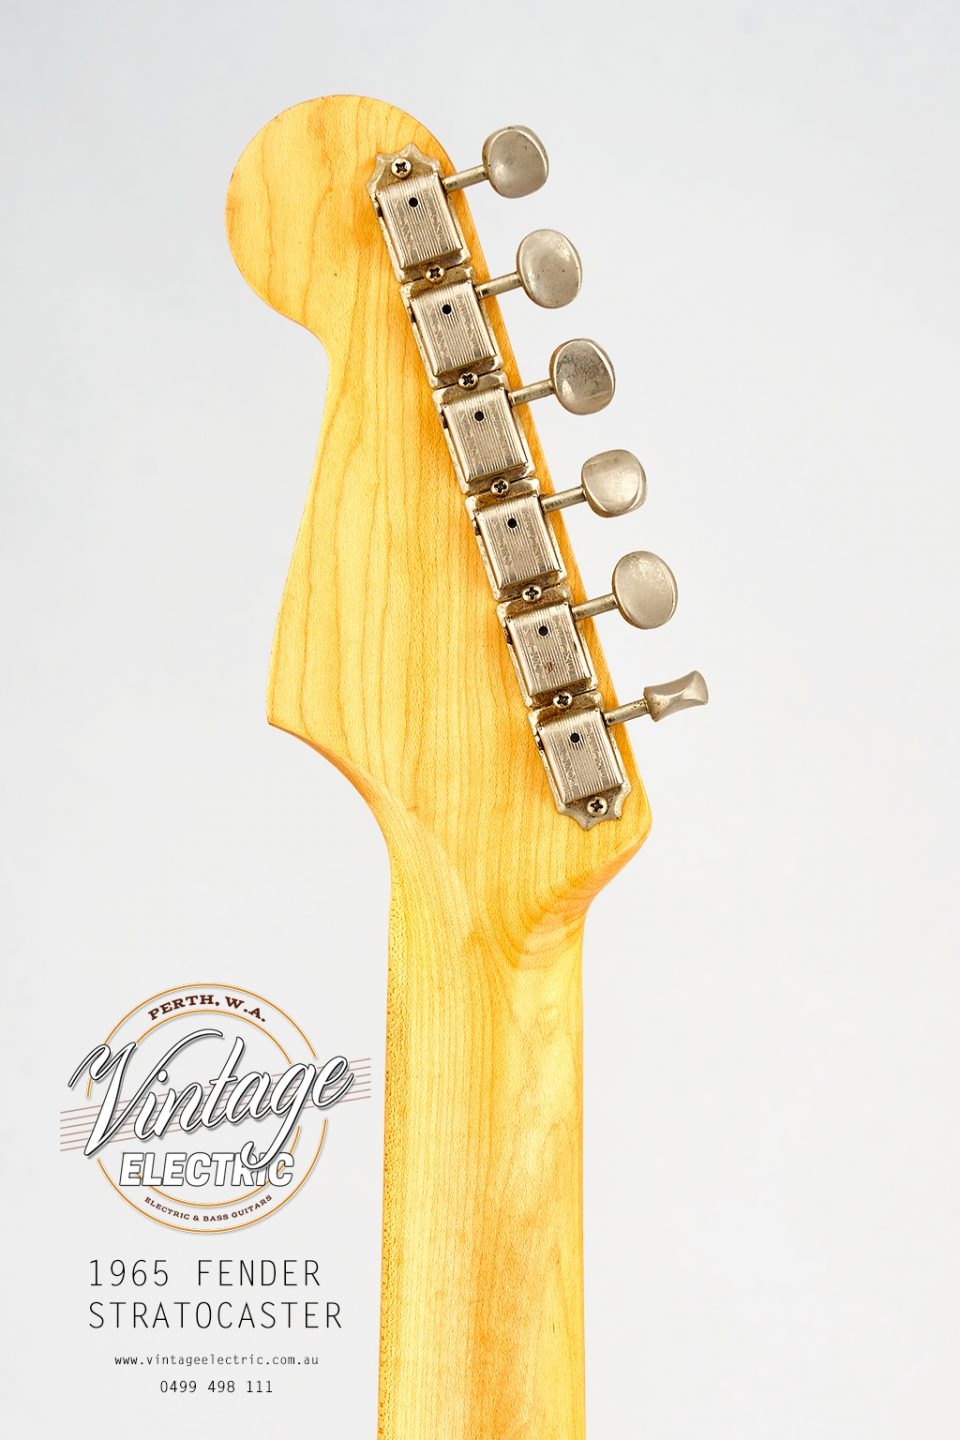 1965 Fender Stratocaster USA Back of Headstock